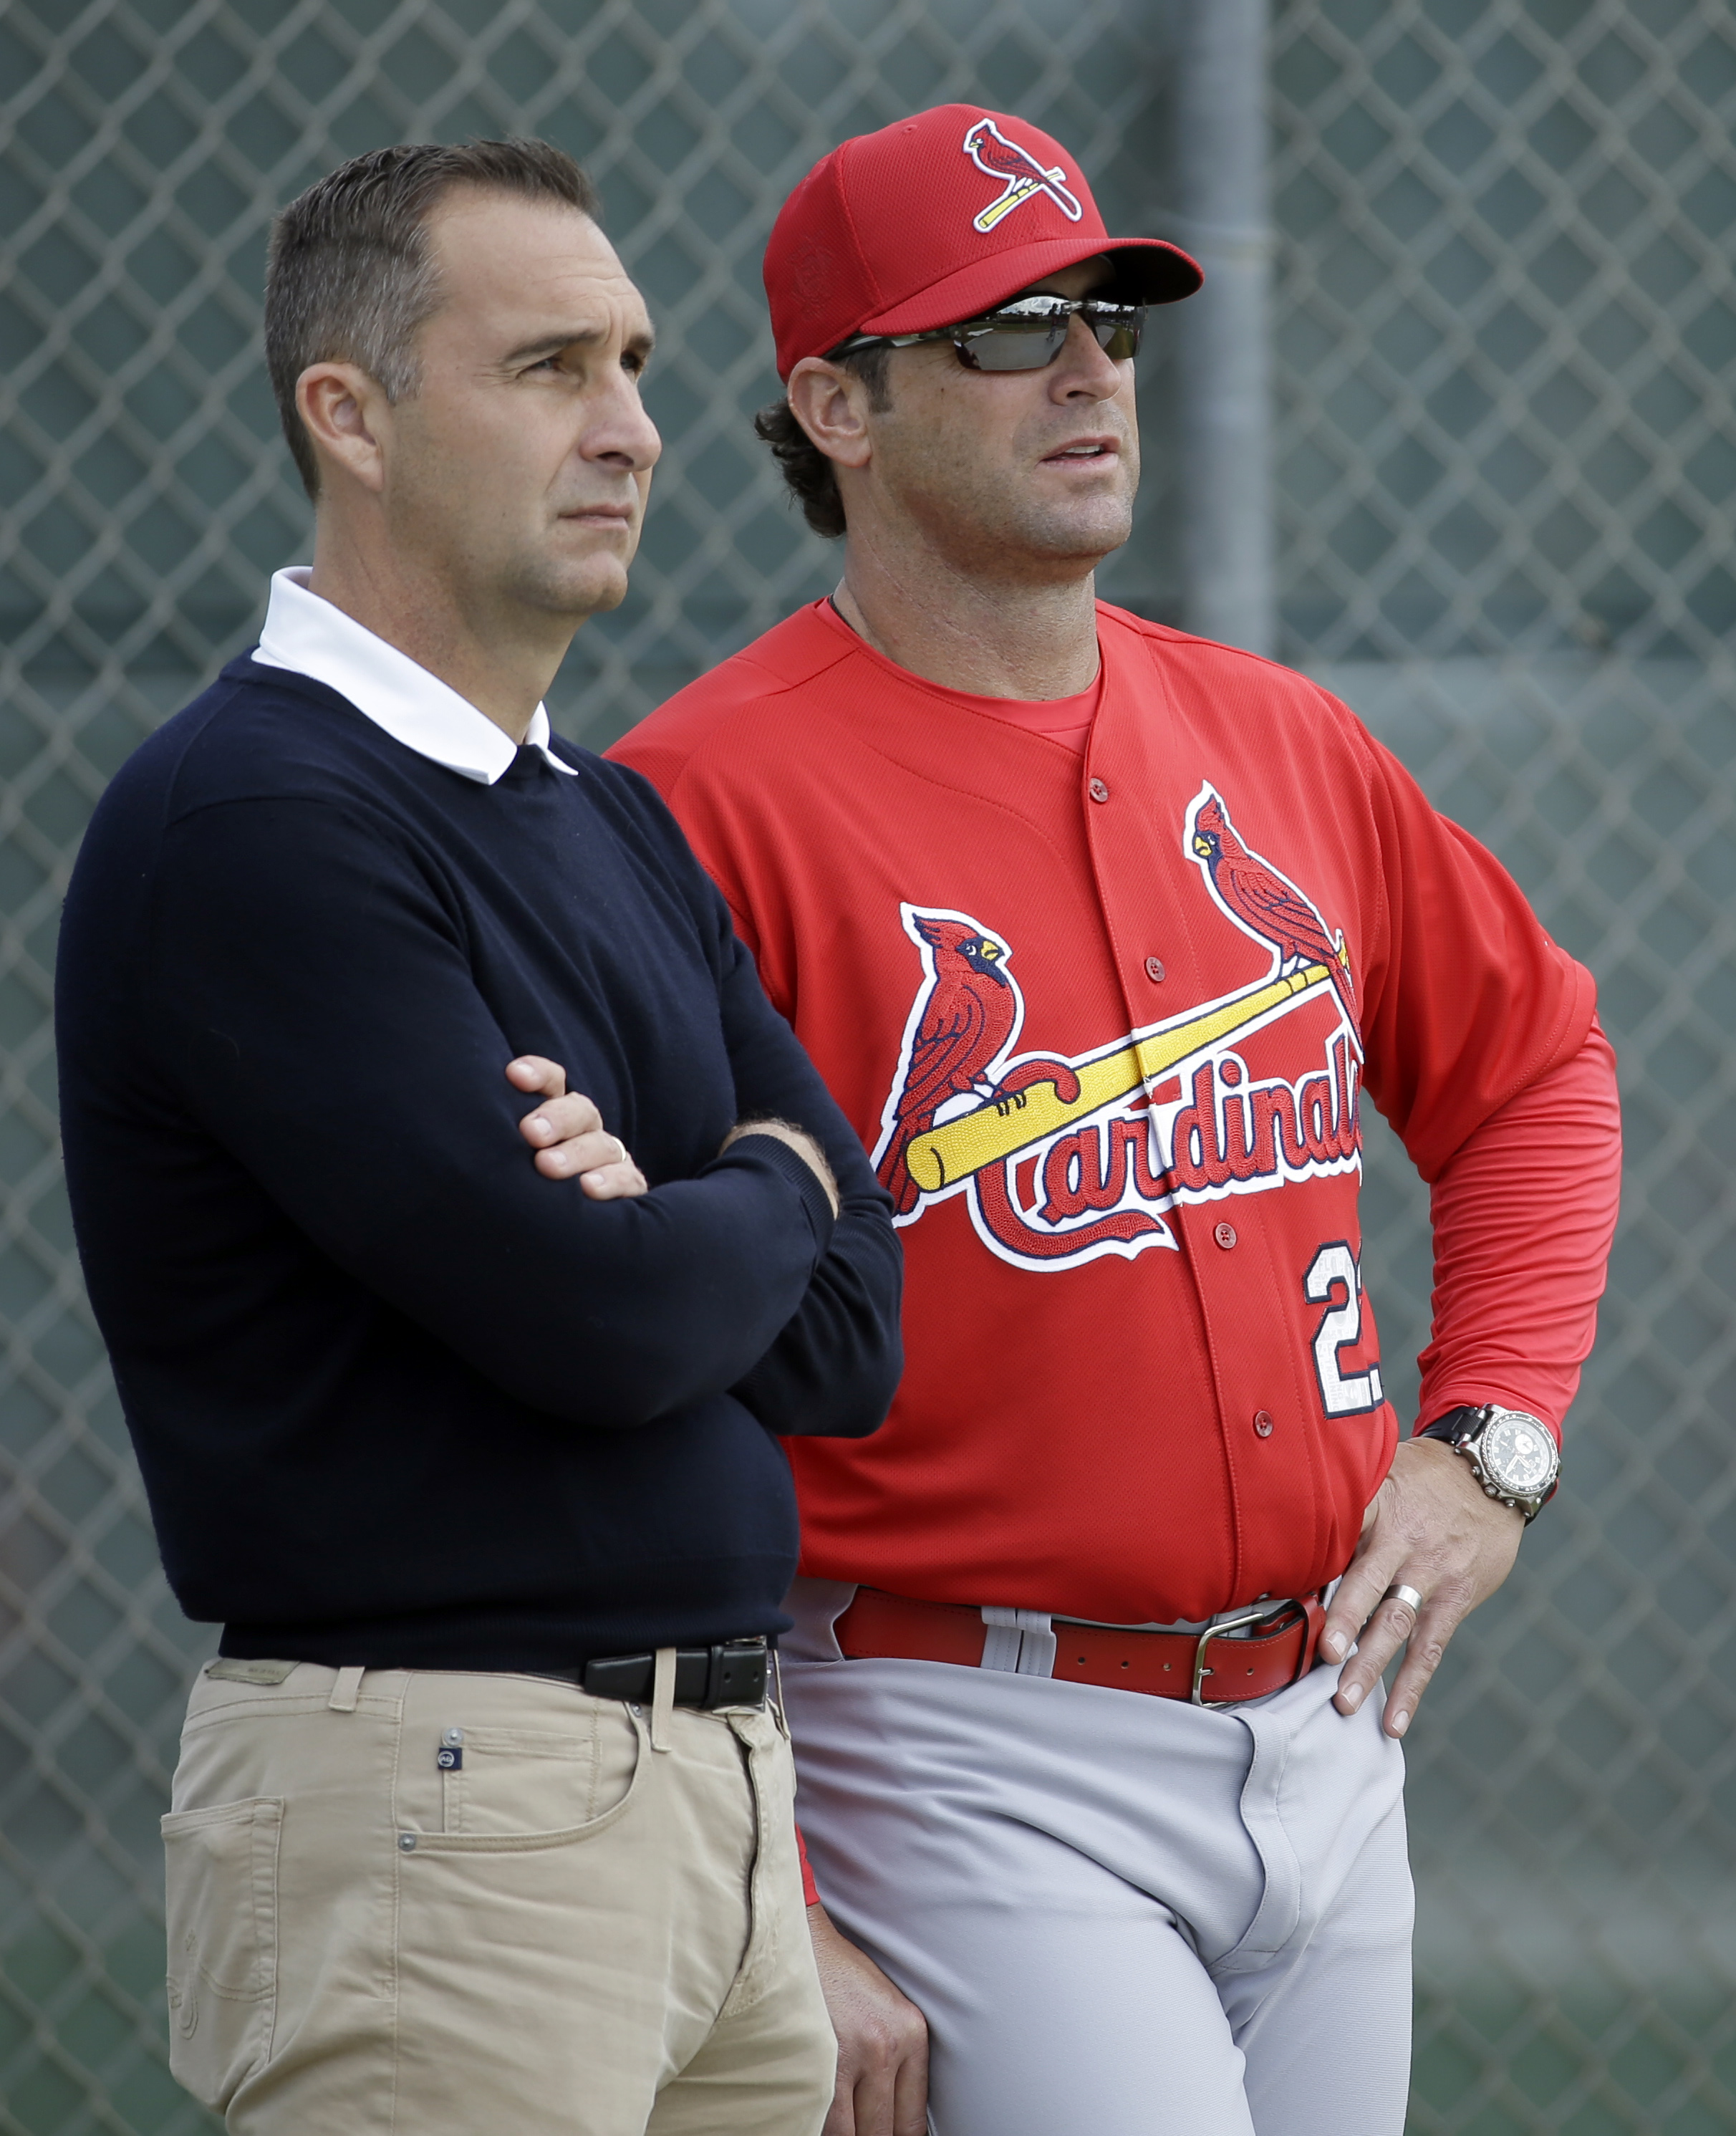 St. Louis Cardinals general manager John Mozeliak, left, and manager Mike Matheny watch pitchers throw in the bullpen during spring training baseball practice Thursday, Feb. 18, 2016, in Jupiter, Fla. (AP Photo/Jeff Roberson)